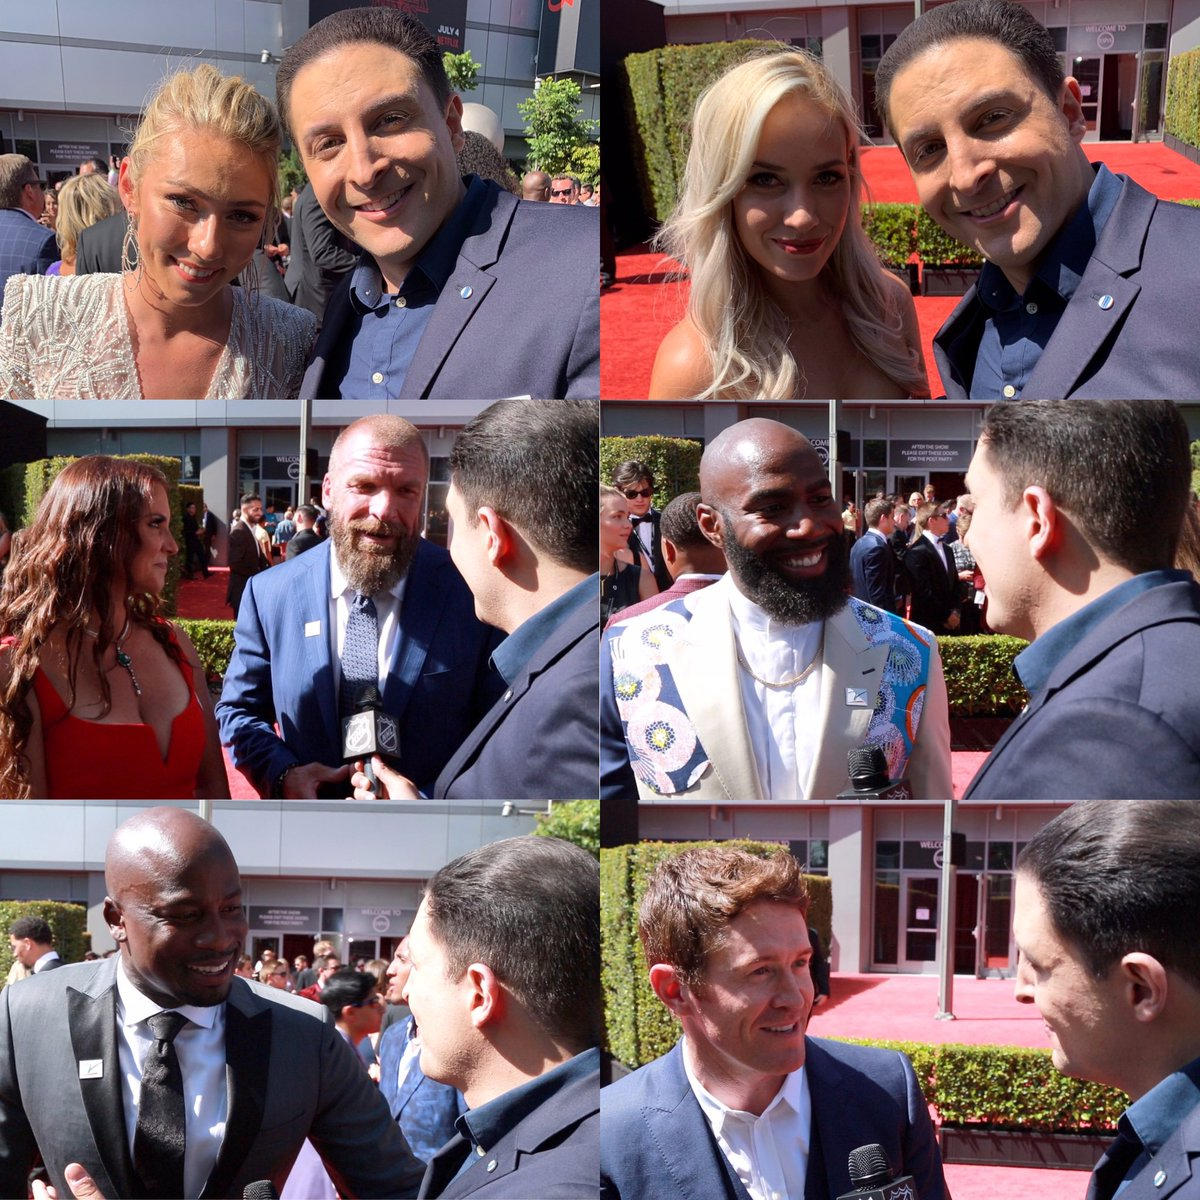 We had a lot of fun at the #ESPYS. Watch @ArthurKade's chats with @StLouisBlues  @JEdmundson3, @binnnasty, @TripleH, @WWERomanReigns, @Ninja, @MikaelaShiffrin, @MalcolmJenkins, @scottdixon9, @Akbar_Gbaja, @RealPaigeWWE, @brucebuffer & @Yesitschrismcd https://twitter.com/NHL/status/1152987853061853185 …